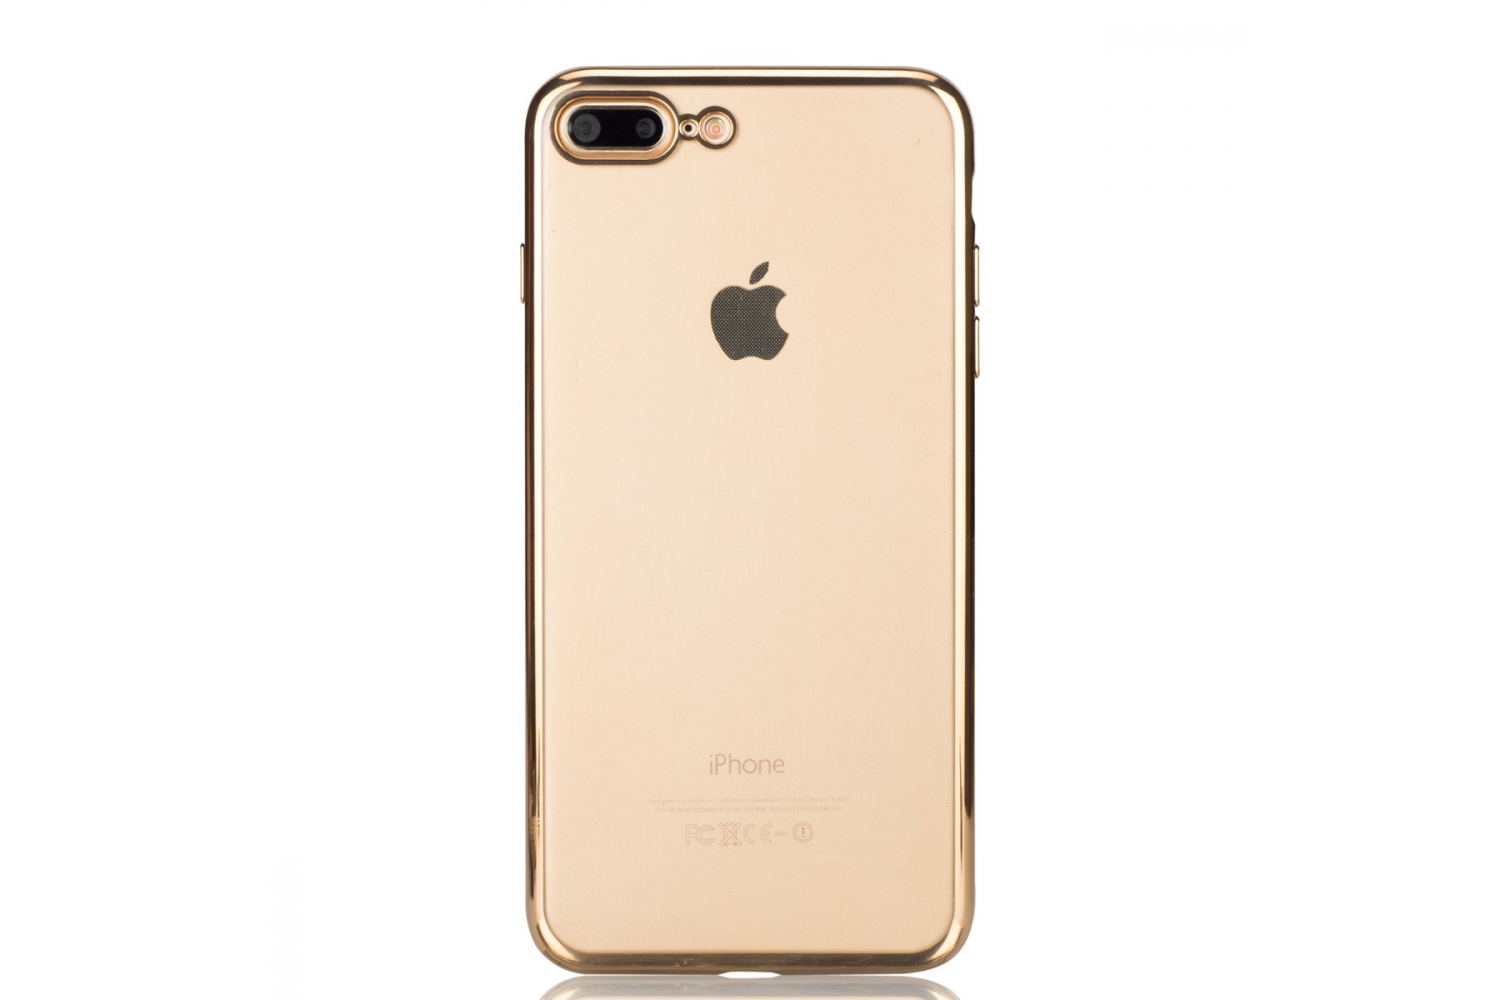 Iphone 7 Plus Back cover TPU case Transparant Goud